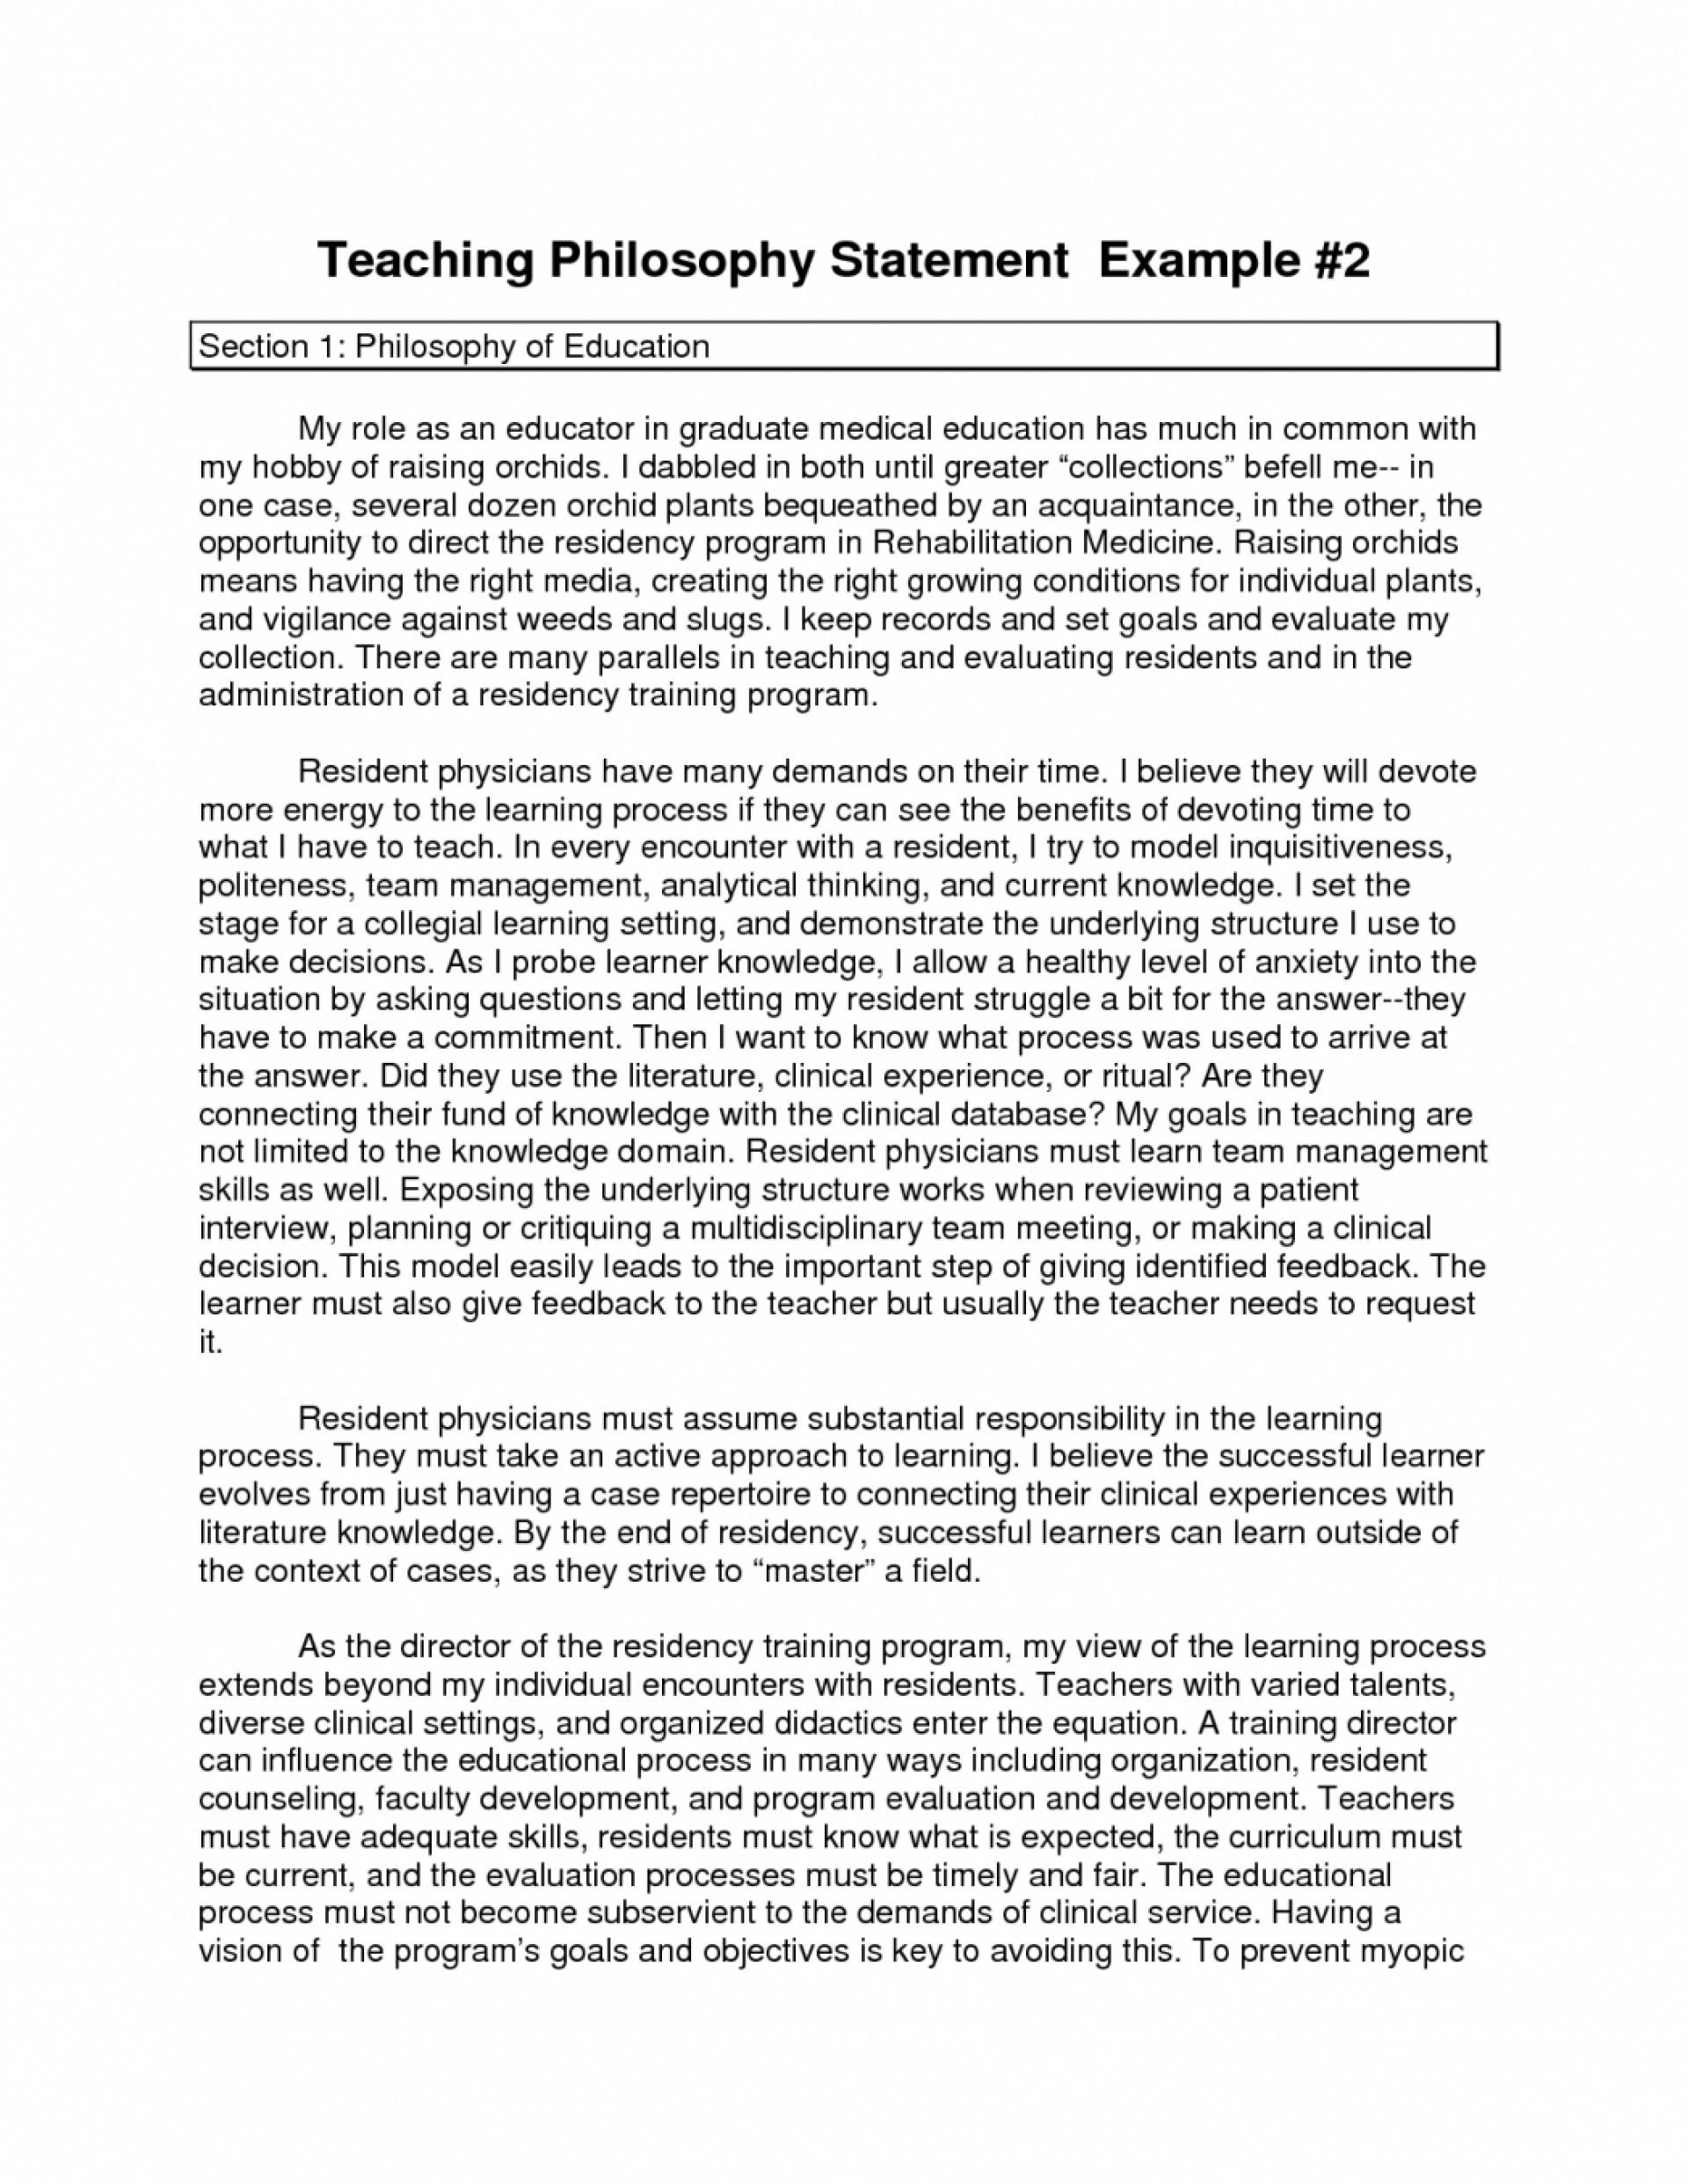 003 essay on philosophy of education cover letter life